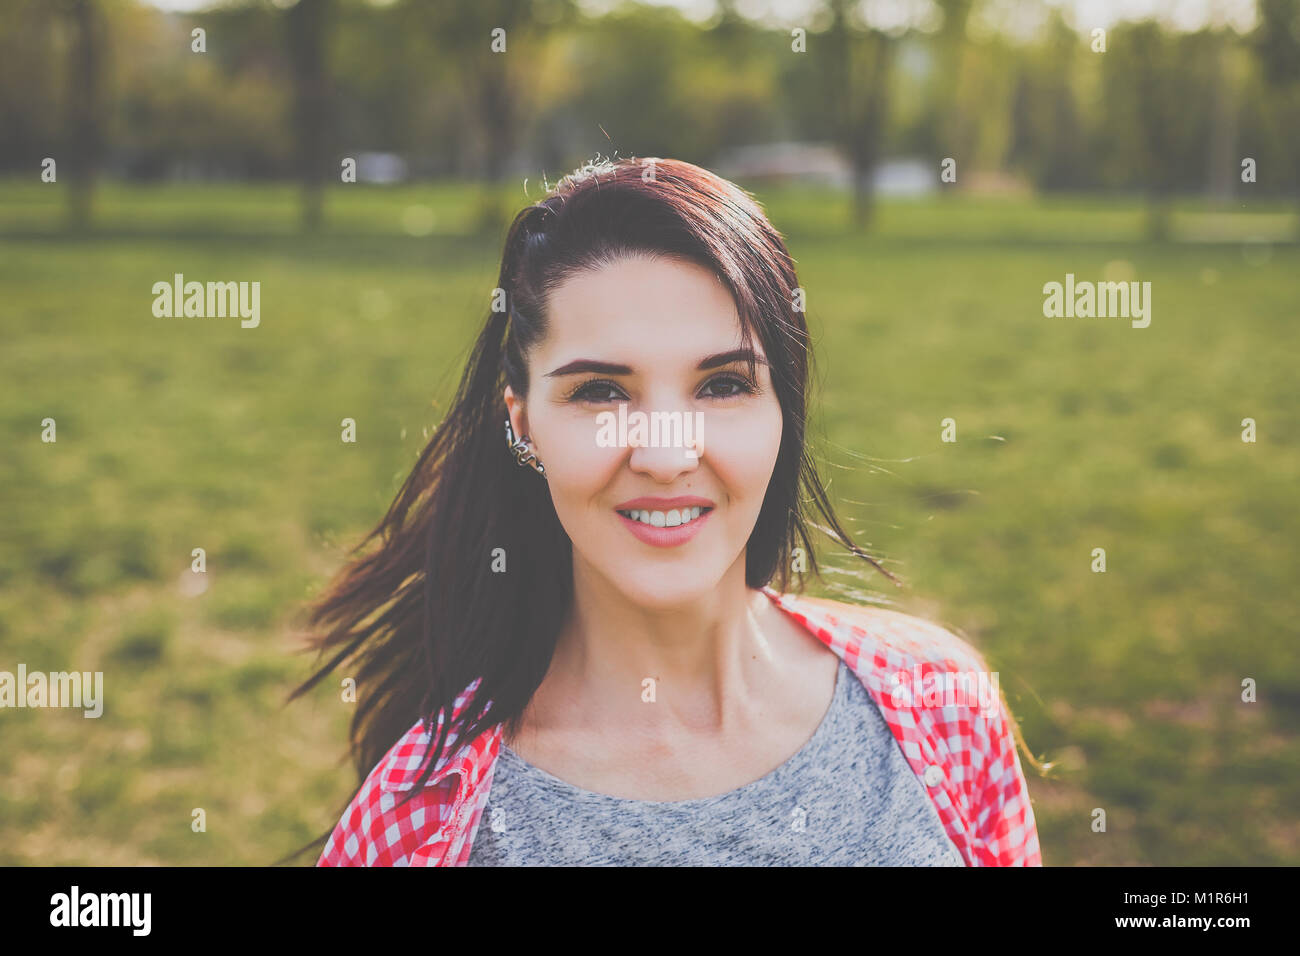 Hipster girl smiling Photo Stock